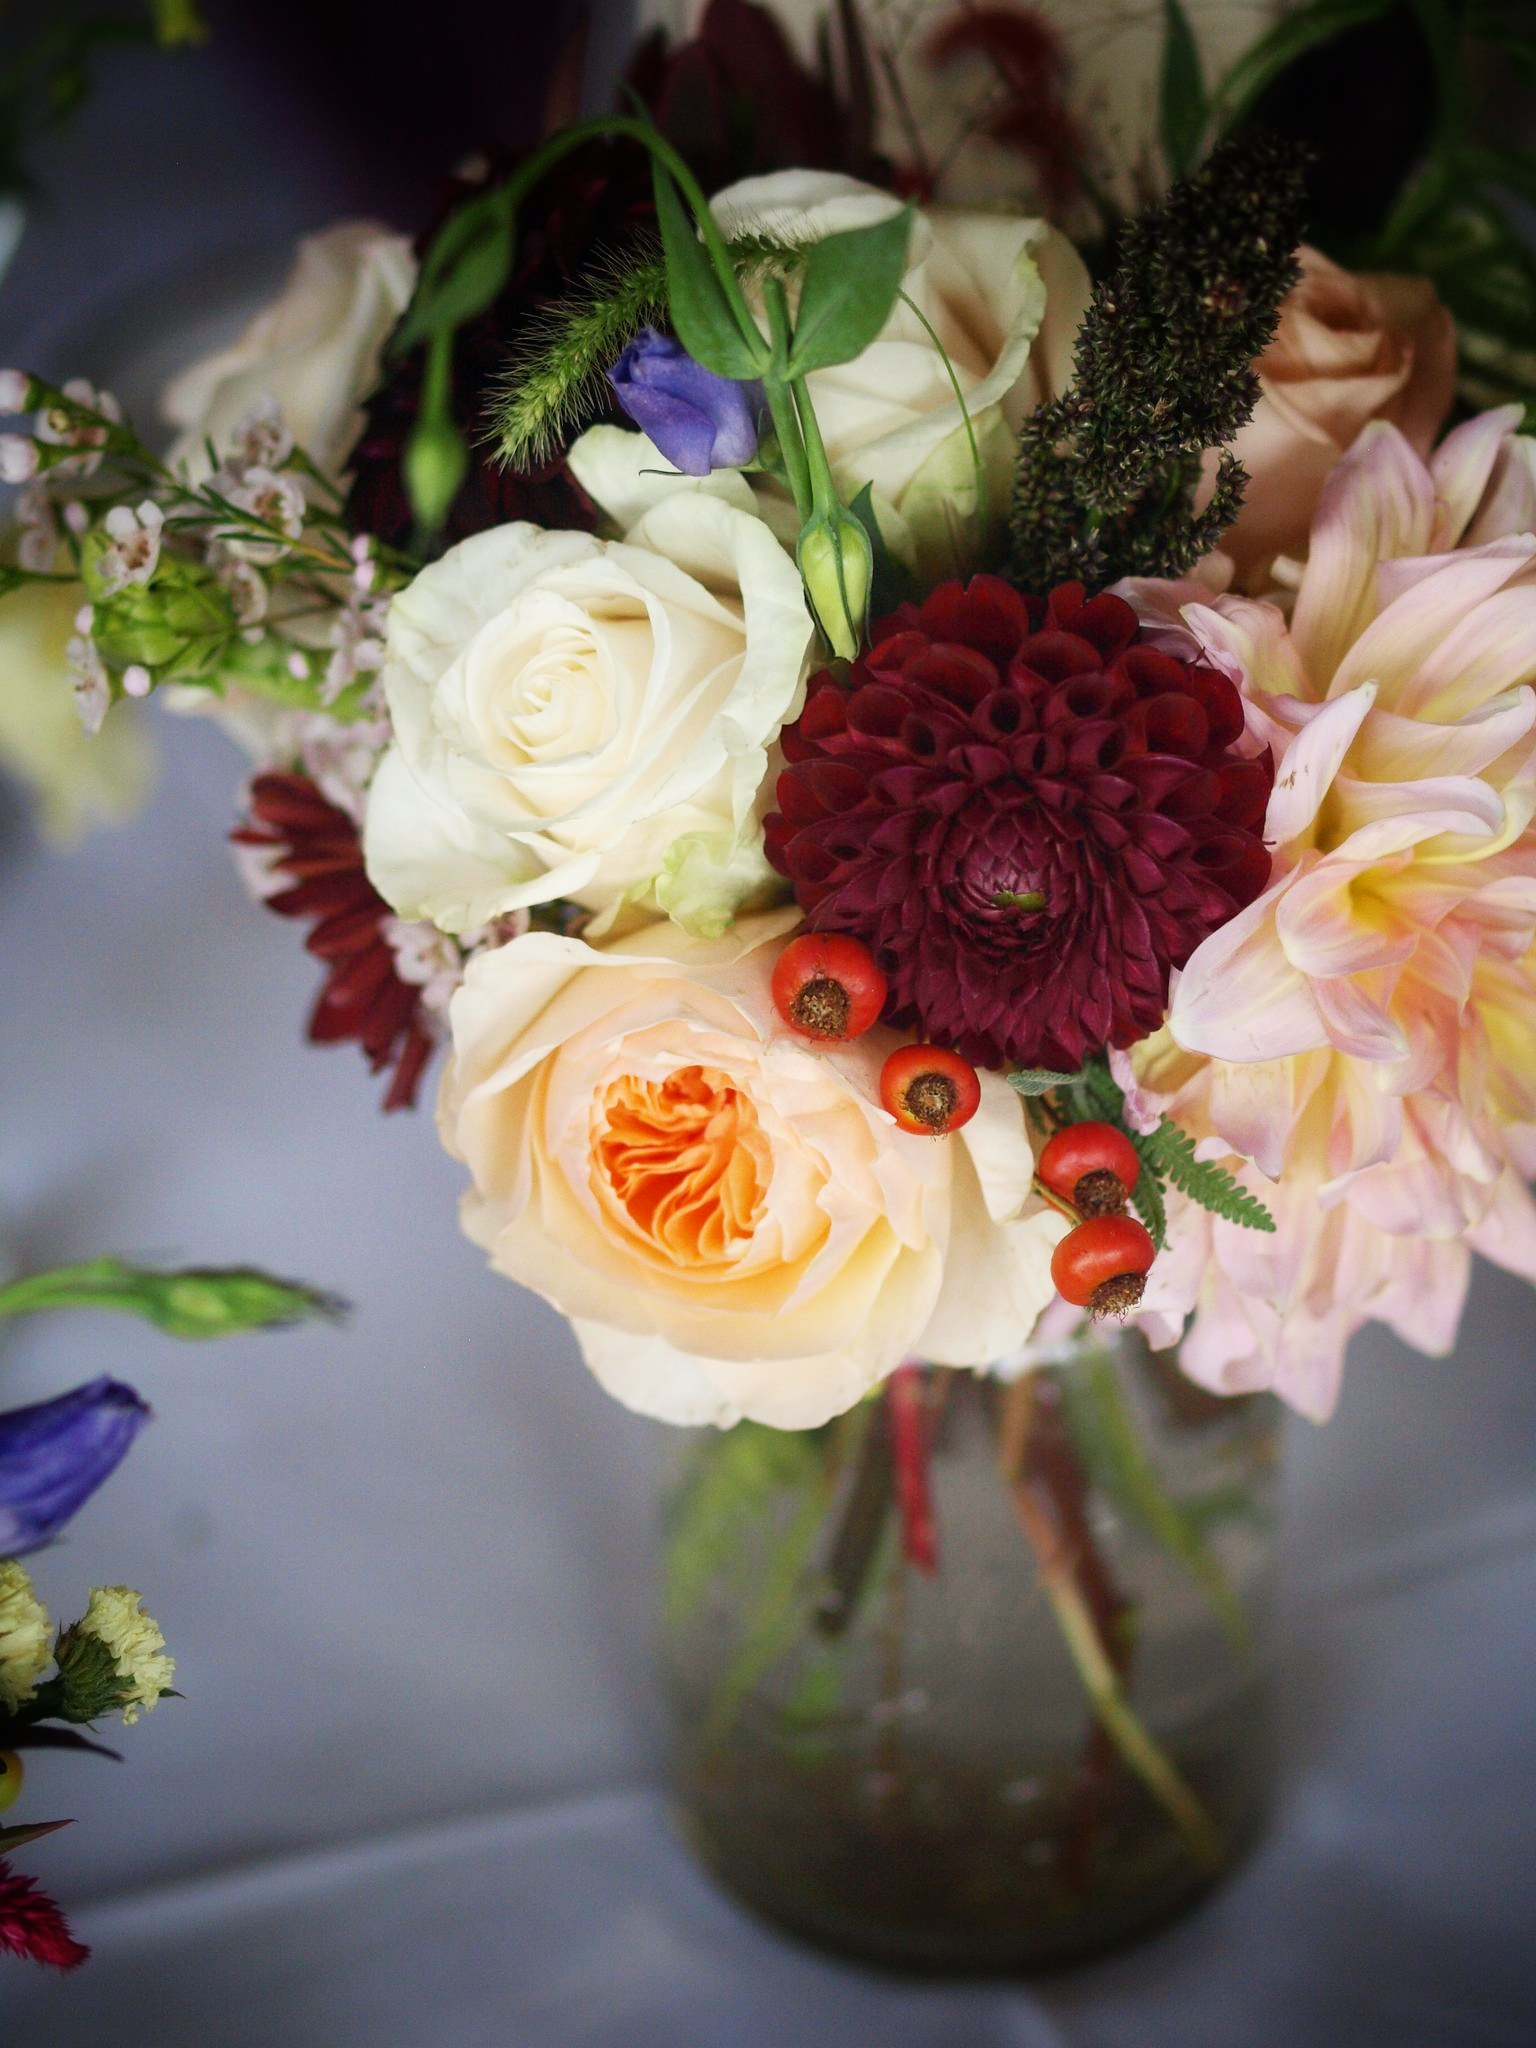 Oreonta house woodstock wedding mason jar centerpiece with garden rose dahlia and wildflowers.jpg